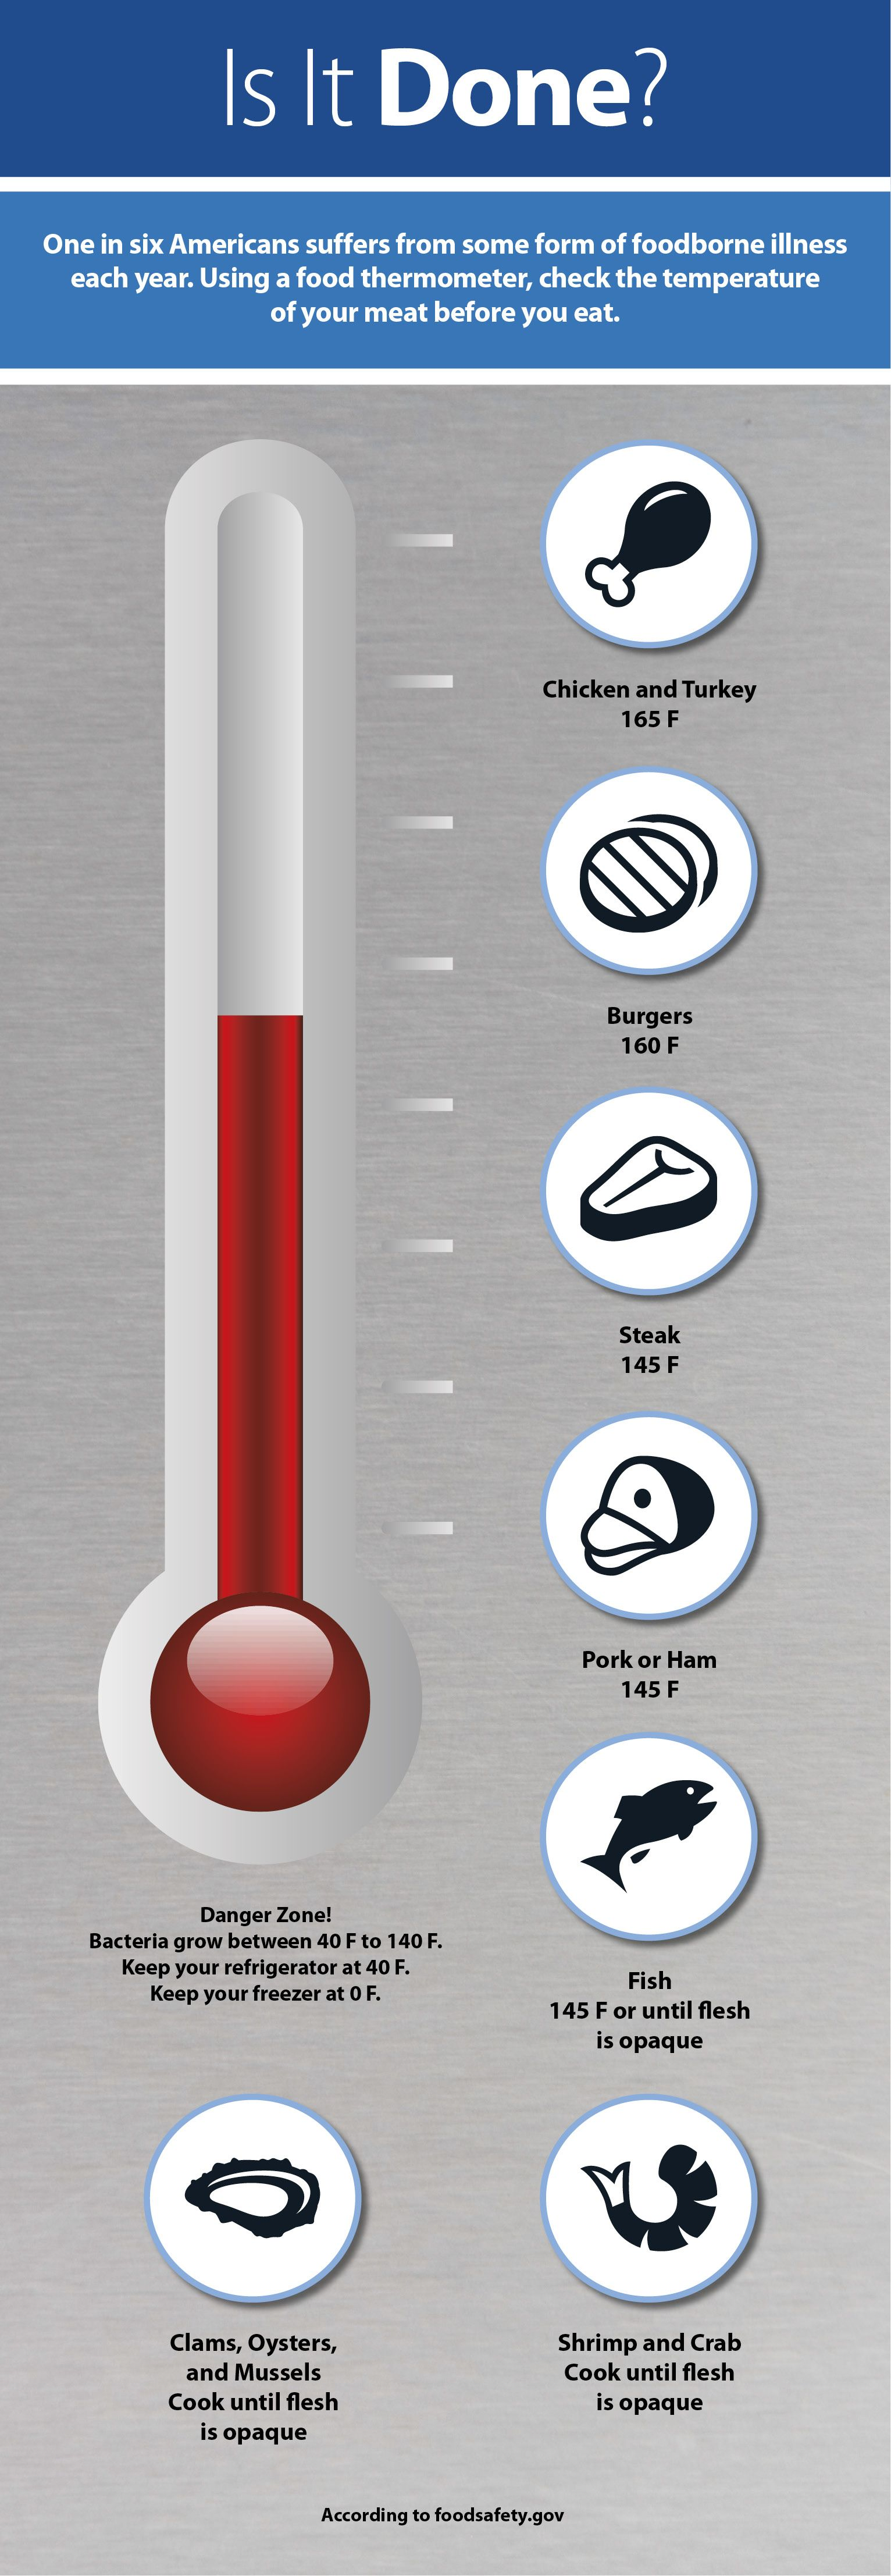 Are You Grilling This Weekend Use A Meat Thermometer A